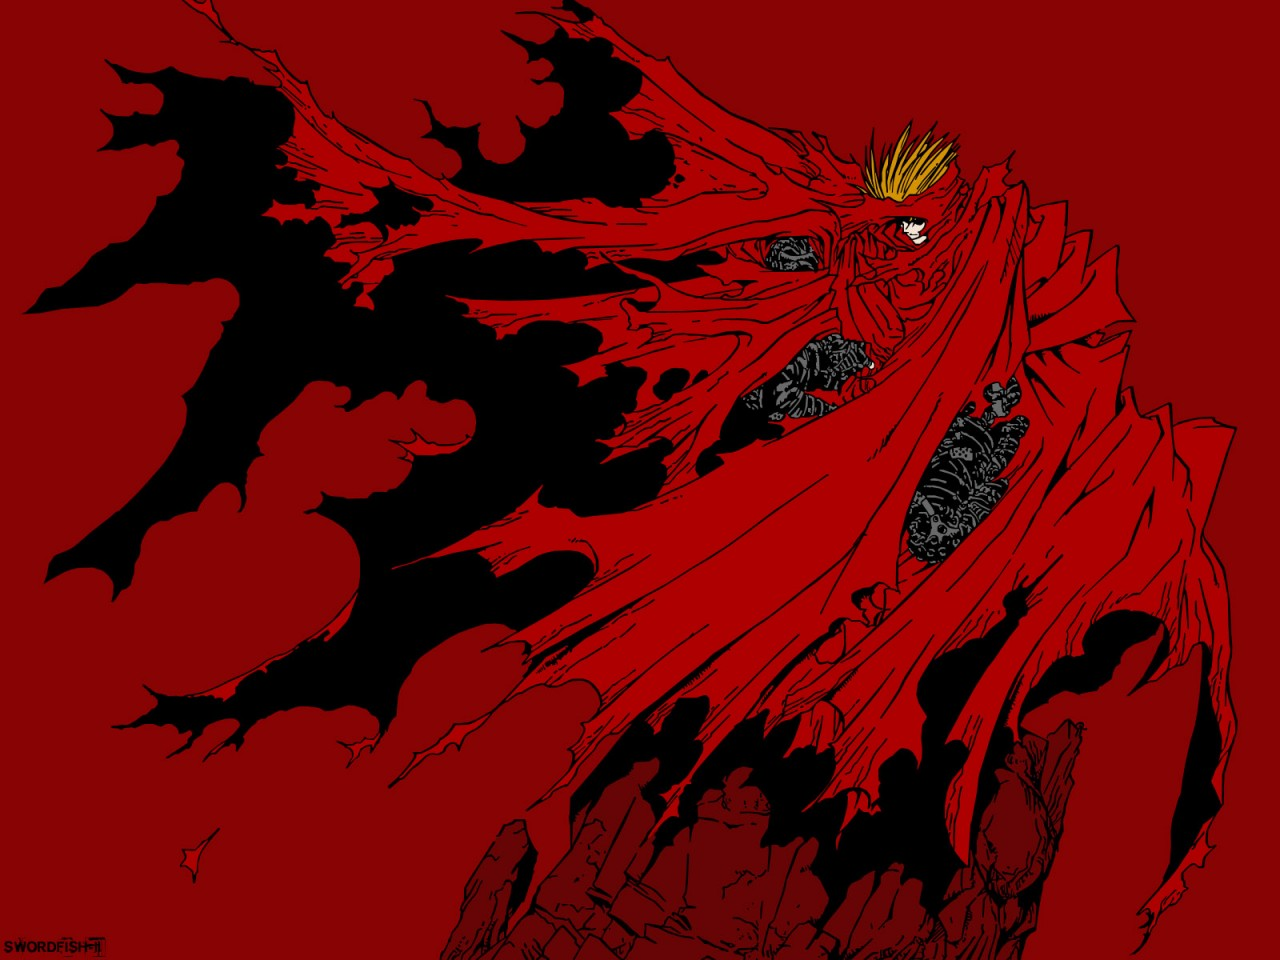 trigun overlord vash HD Wallpaper   Anime Manga 424791 1280x960